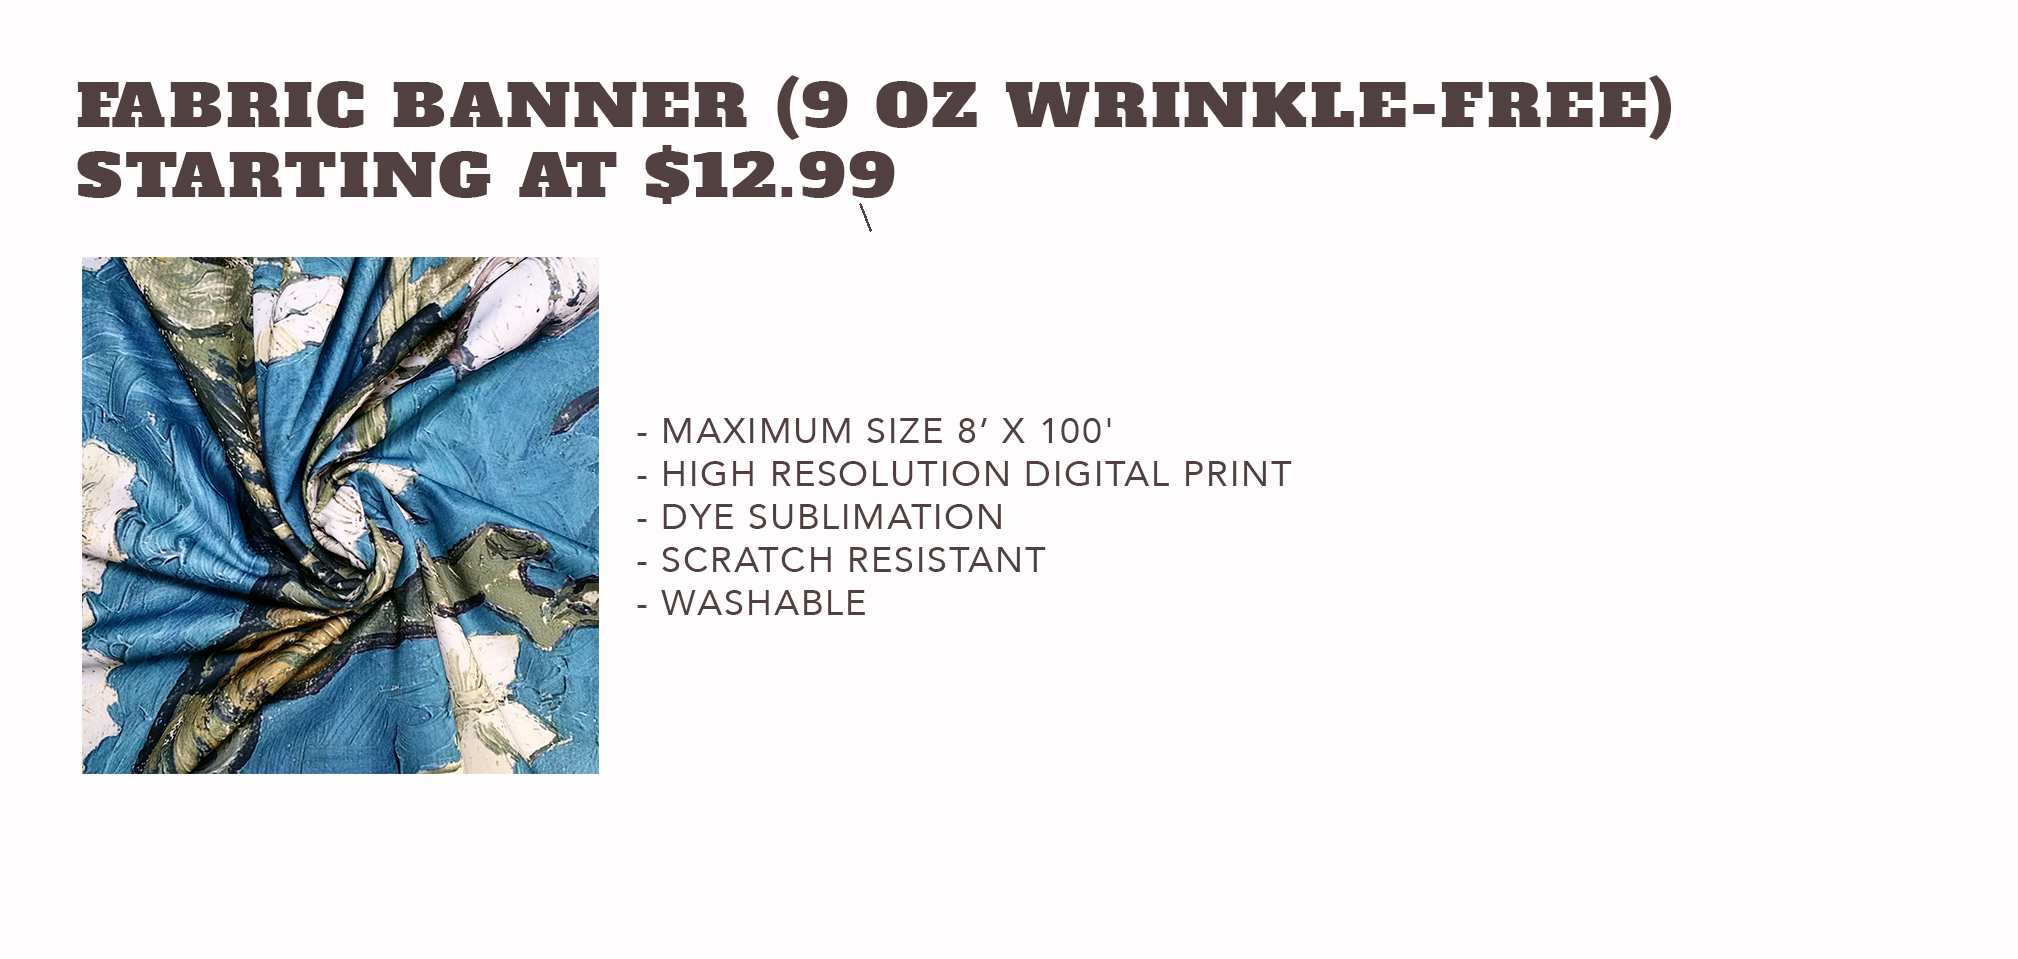 Fabric Banner(9oz. Wrinkle-Free) - Starting at $12.99